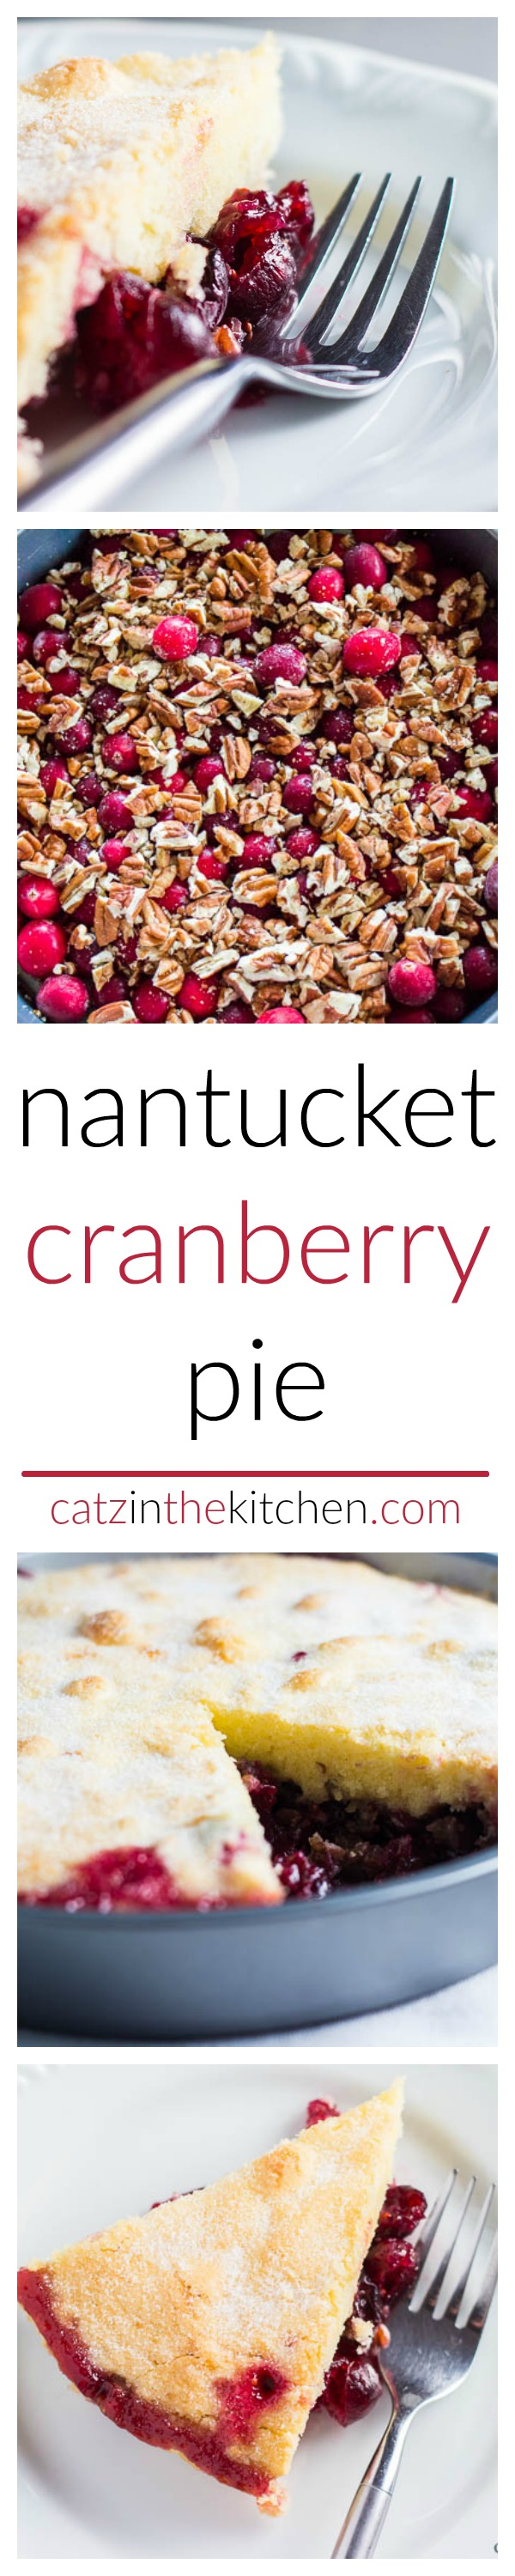 Nantucket Cranberry Pie | Catz in the Kitchen | catzinthekitchen.com | #dessert #pie #cranberries